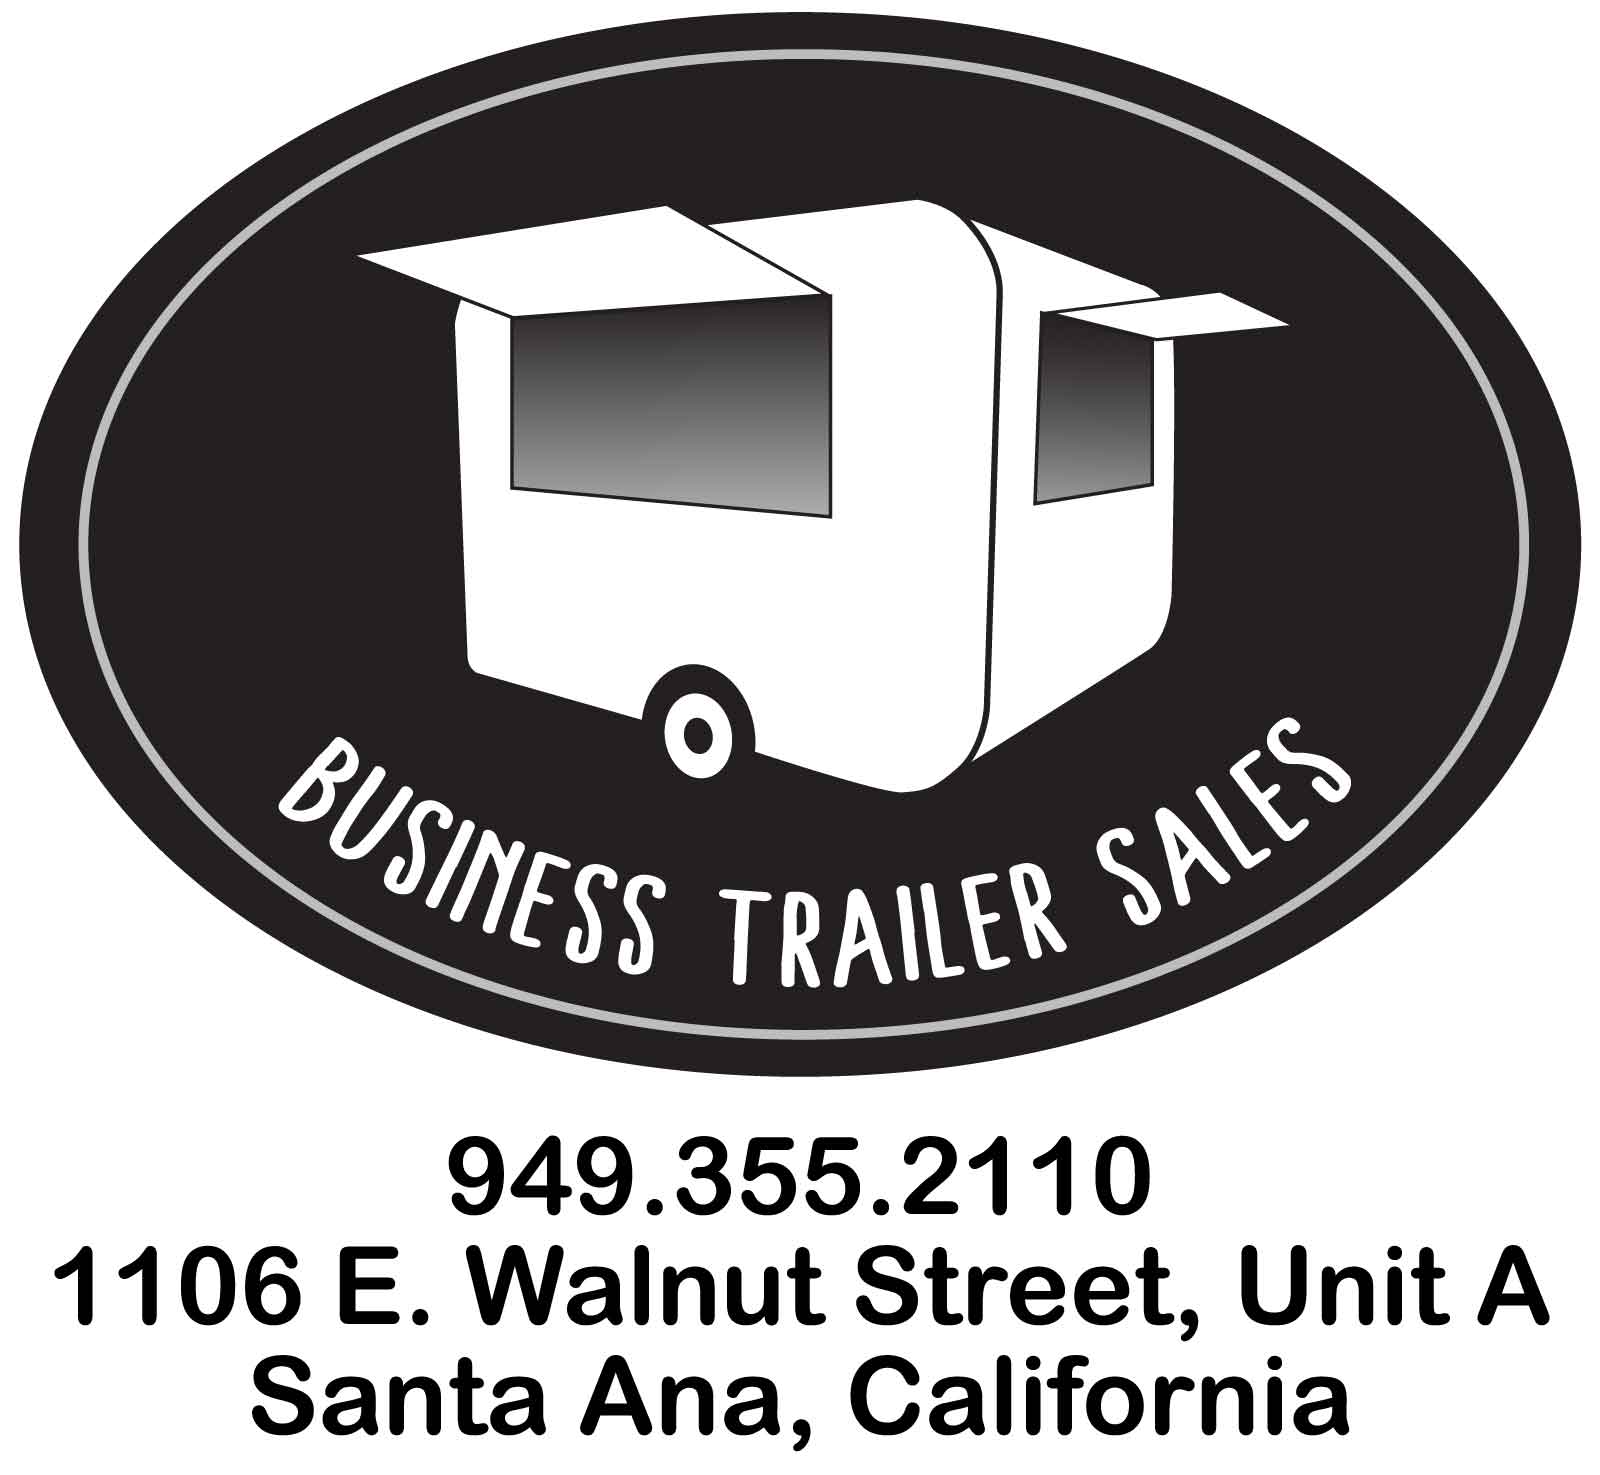 contact business trailer sales